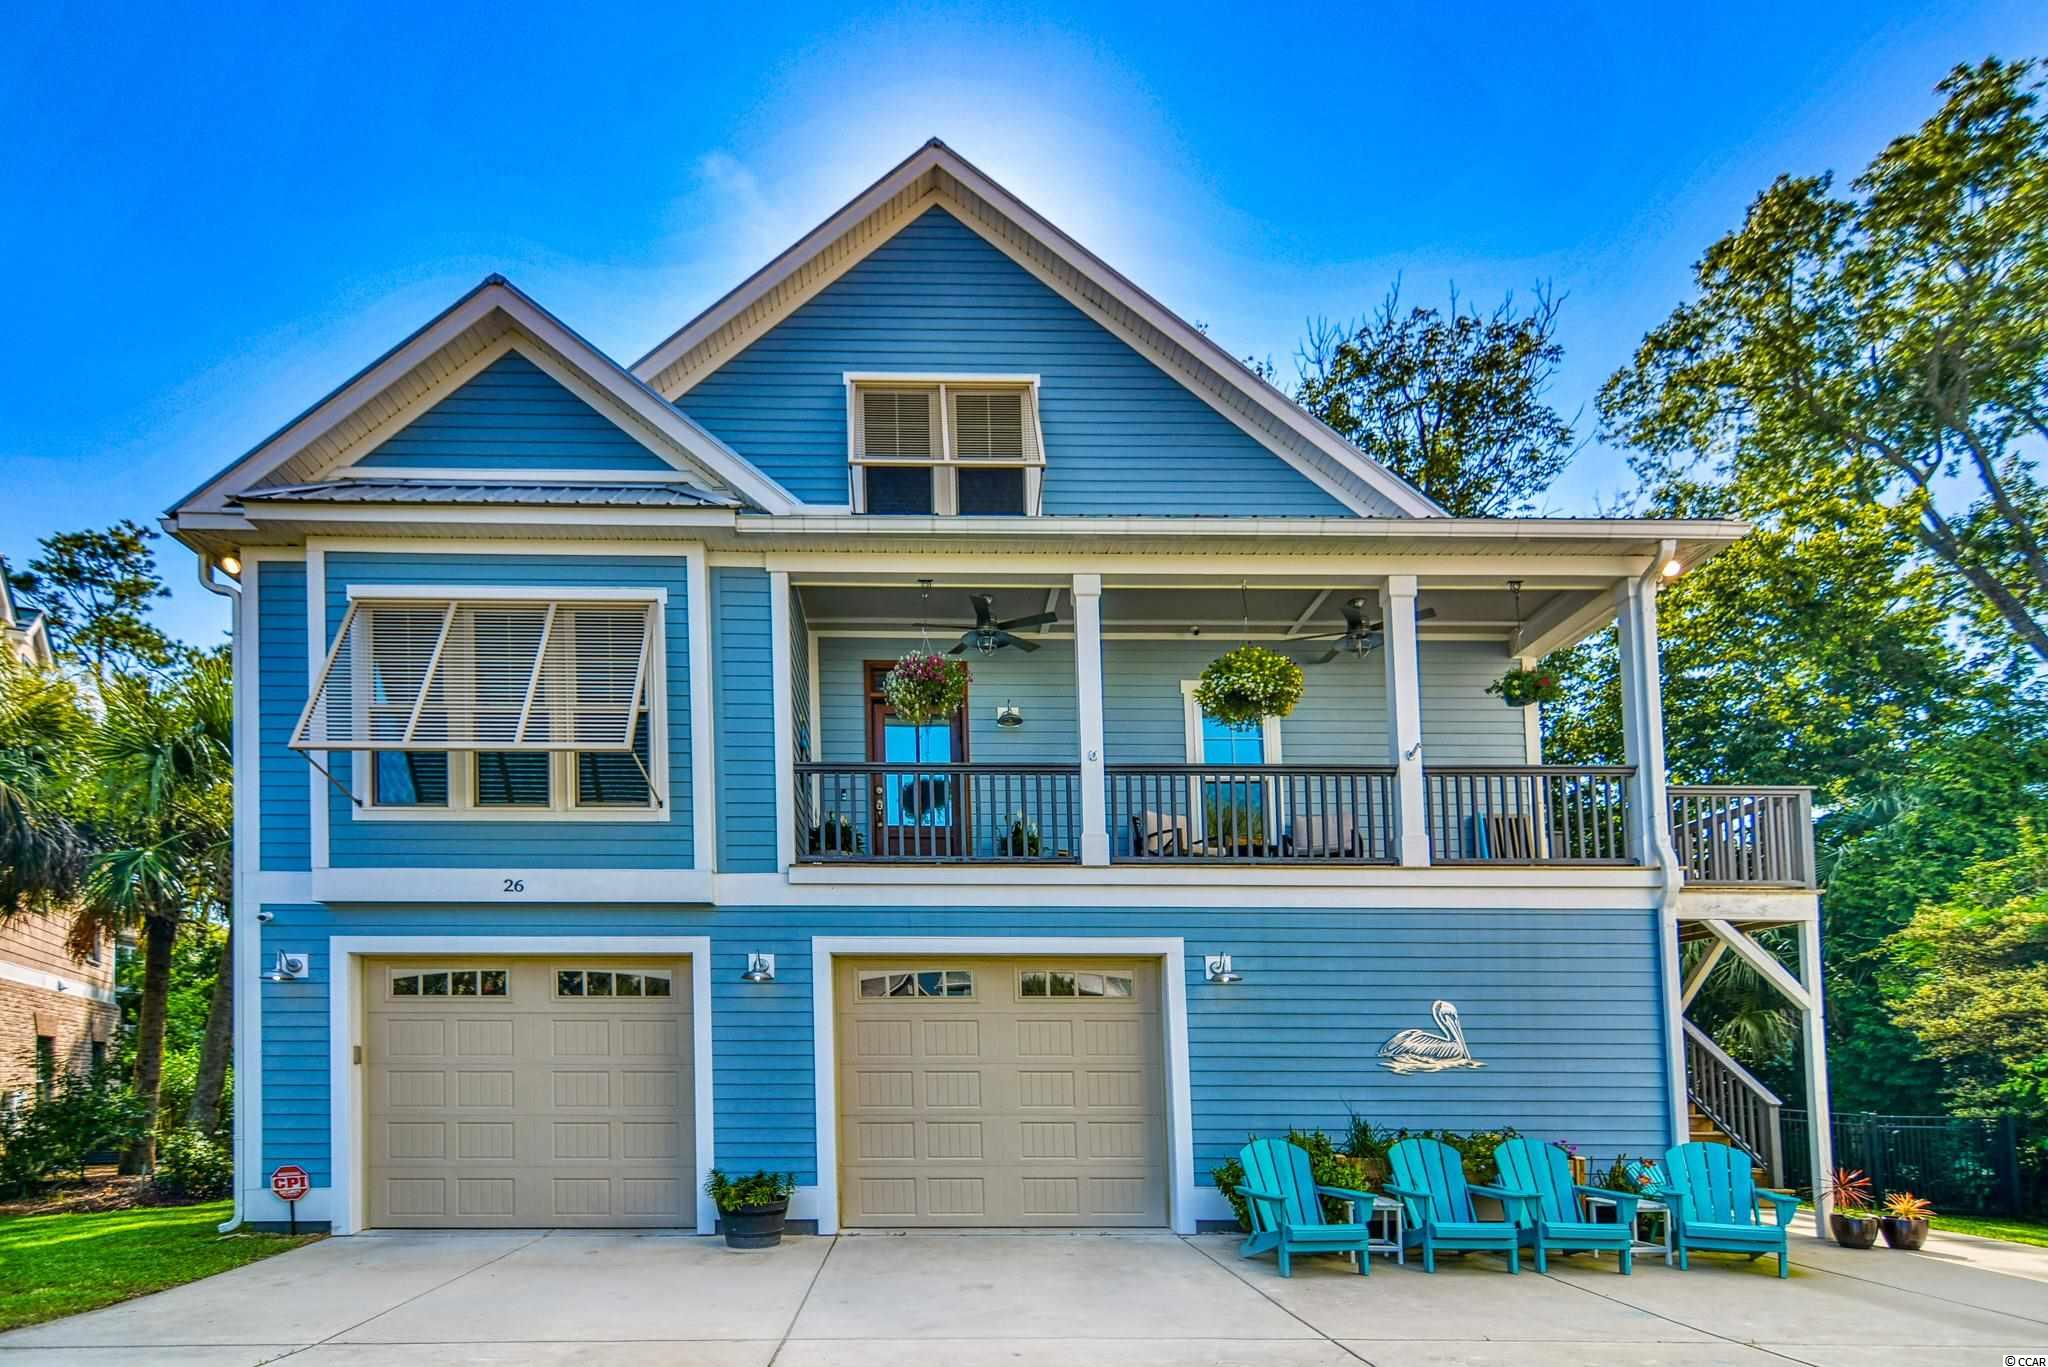 Walk to the Marsh Walk from this beautiful 4bed/3.5ba home in Creekside Cottages. This home is a boater's dream with an OVER-SIZED, 2 BAY GARAGE that will accommodate a large center-console boat AND golf cart in 1 bay and 2 SUVs in the other. Home is ELEVATOR-READY with shaft from ground floor up to the main living area/master. While not in use, this space offers lots of additional storage space. On the ground floor, you will find a 1bed/1ba PRIVATE-ENTRY SUITE accessible via the garage OR side-yard. Laundry on this floor, as well. Because of the separate entry, it's the perfect office, mother-in-law suite or guest suite. With over 4500 total sqft, this house boasts several COVERED DECKS including the front porch AND a large grilling porch on the ground floor right off the FENCED-IN yard. Plus, the house is ready with an INVISIBLE FENCE so your pups can roam the entire property while you enjoy the outdoors. Main floor is light, airy and open and includes a large living room, eat-in kitchen with GAS STOVE that opens out to the large L-shaped SCREEN PORCH. Master is on this floor and has private access to the screen porch, a cozy sitting area and the bathroom has been updated with a custom tile shower, double-sink vanity and walk-in closet. 2nd floor has 2beds/1ba AND LIVING ROOM LANDING with plenty of room for gaming, TV or playroom space. On the CUL-DE-SAC and surrounded by MATURE TREES and LUSH LANDSCAPING this home offers tons of privacy but you can WALK TO to everything Murrells Inlet has to offer including; PUBLIC BOAT LANDING, marinas, docks, restaurants, and shops. Brookgreen Gardens Huntington State Park, bike trails and the beach are just a 5 minute drive. Only 12 miles north you'll find everything Myrtle Beach has to offer including: Myrtle Beach International Airport, Broadway At The Beach, The Market Common, Coastal Grande Mall, 2-Tanger Outlets, Barefoot Resort and Coastal Carolina University (CCU), marinas, public docks, landings, restaurants, golf cour